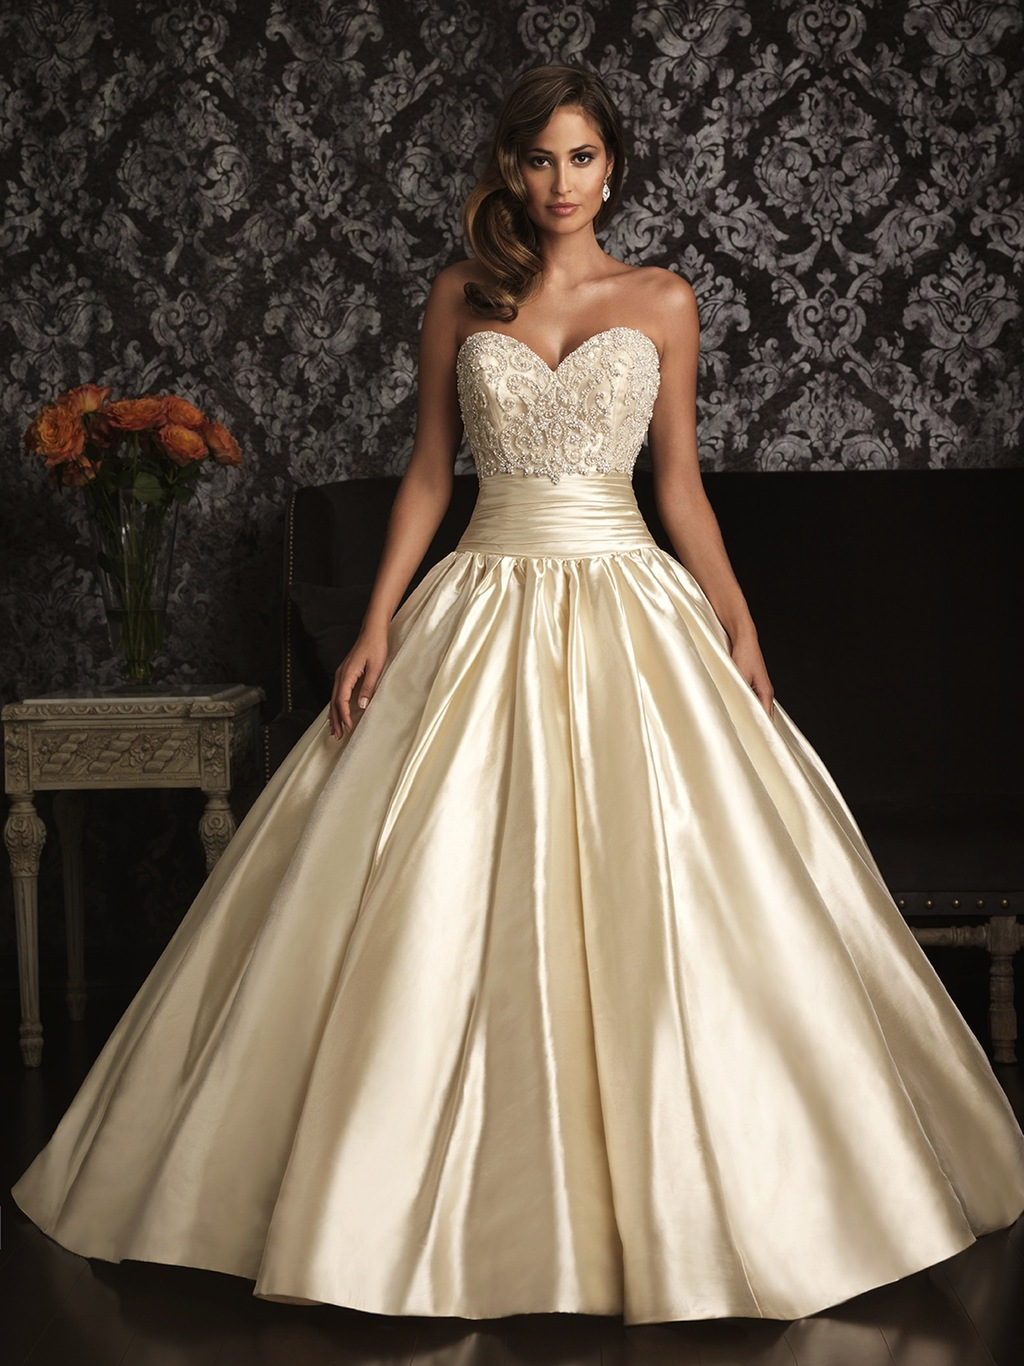 Allure-bridals-wedding-dress-bridal-gown-allure-collection-2013-9001f-2.full